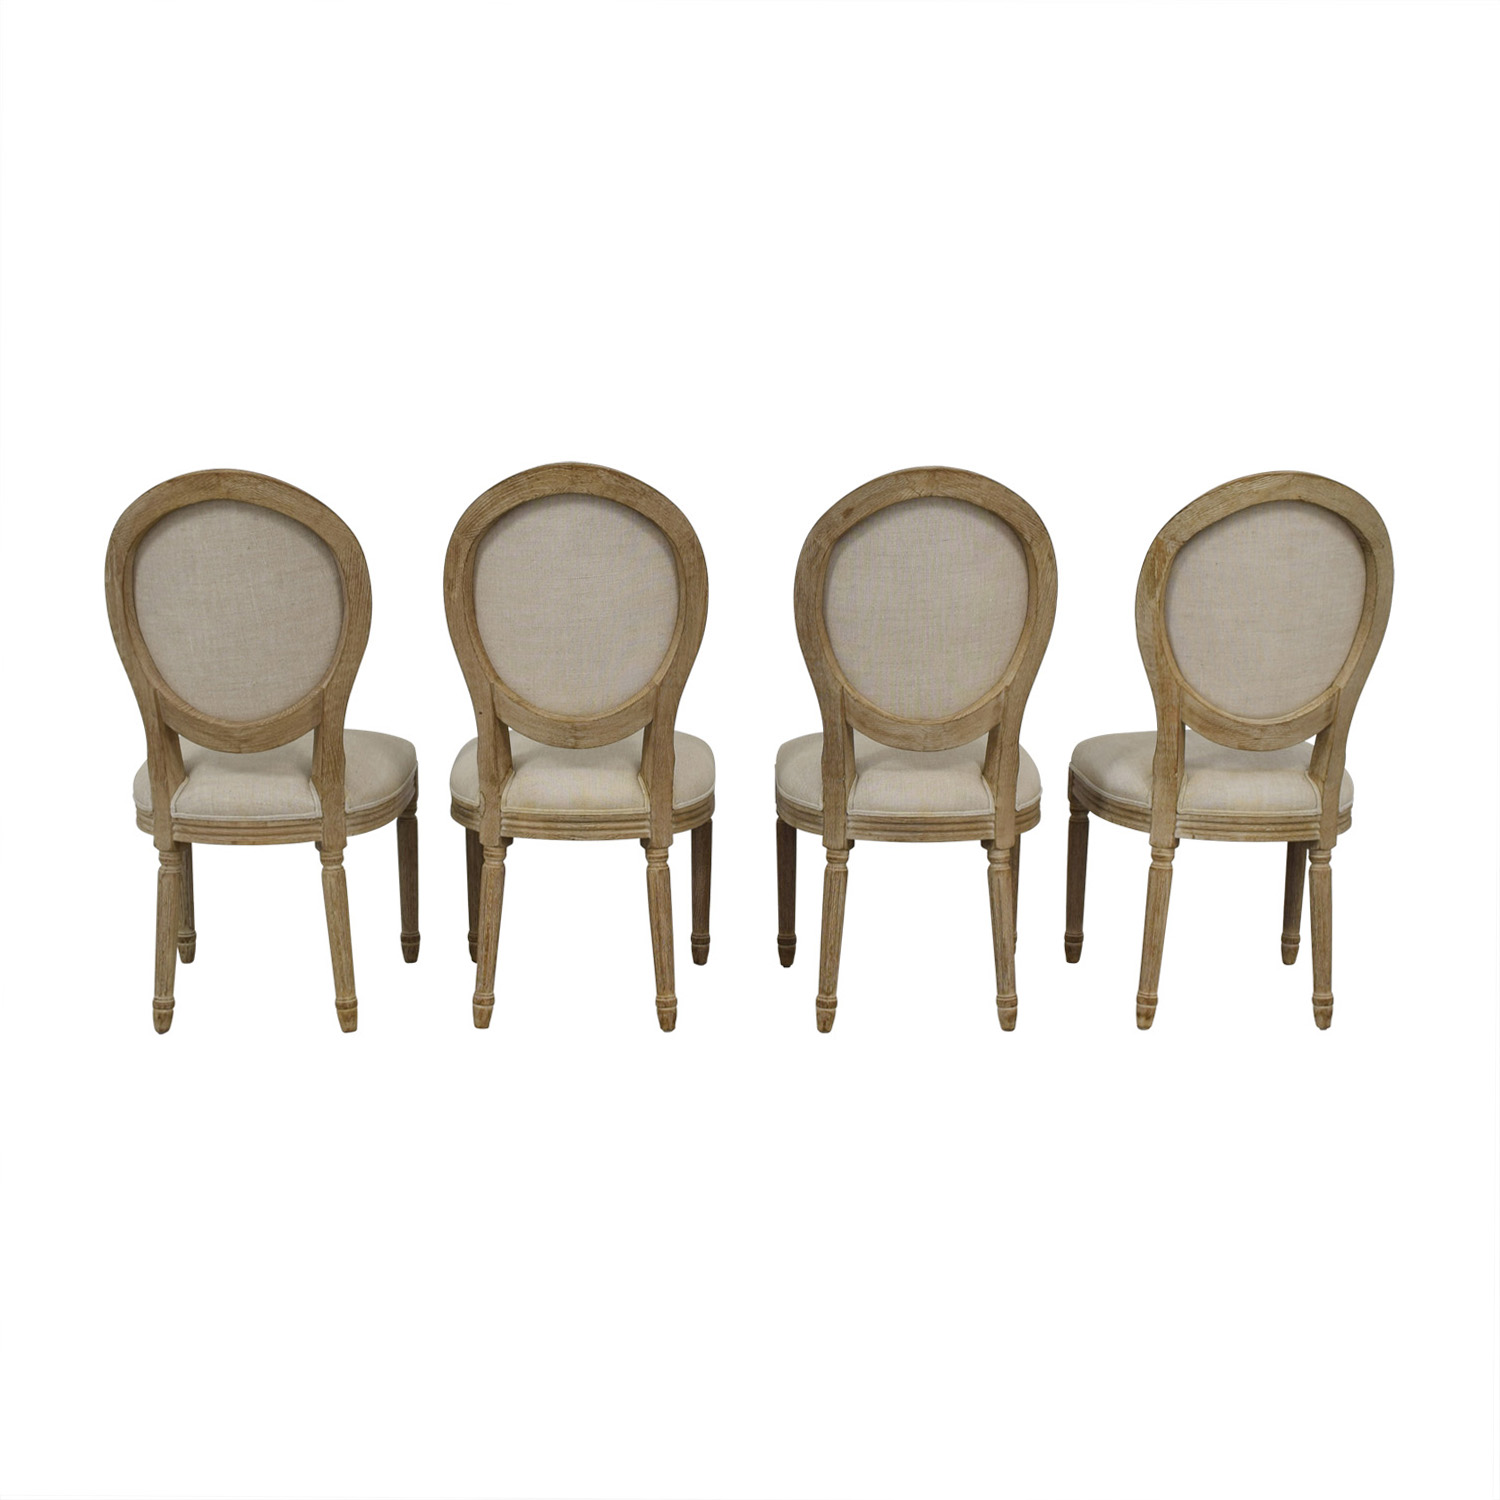 Restoration Hardware Restoration Hardware Vintage French Round Dining Chairs price